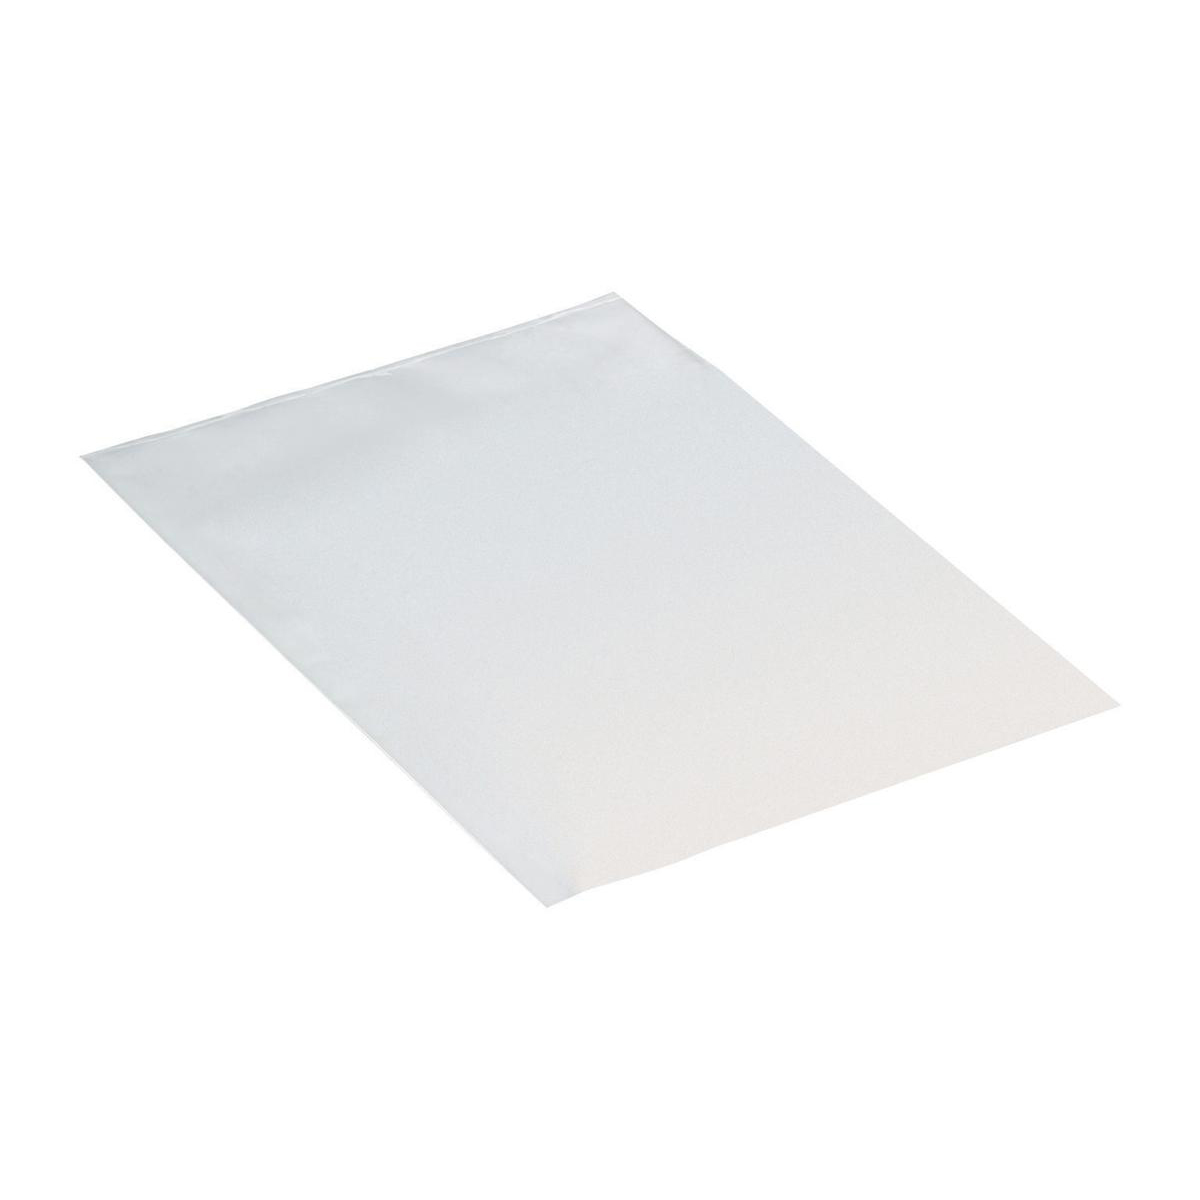 Image for Polythene Bags 300x450mm 30 Micron Clear [Pack 1000] (0)